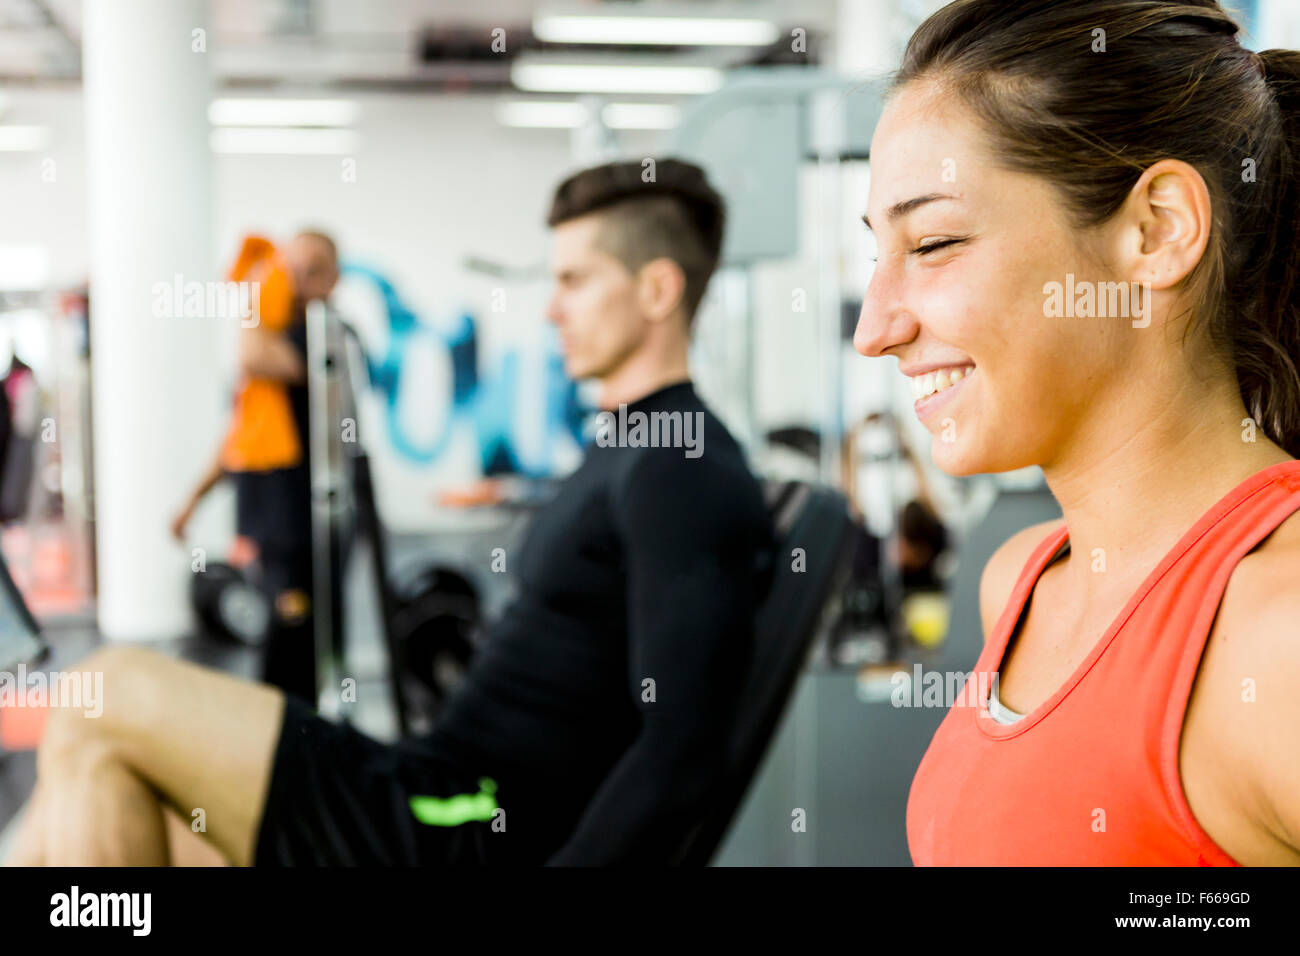 A handsome man and a beautiful woman working out together in a gym and bonding - Stock Image